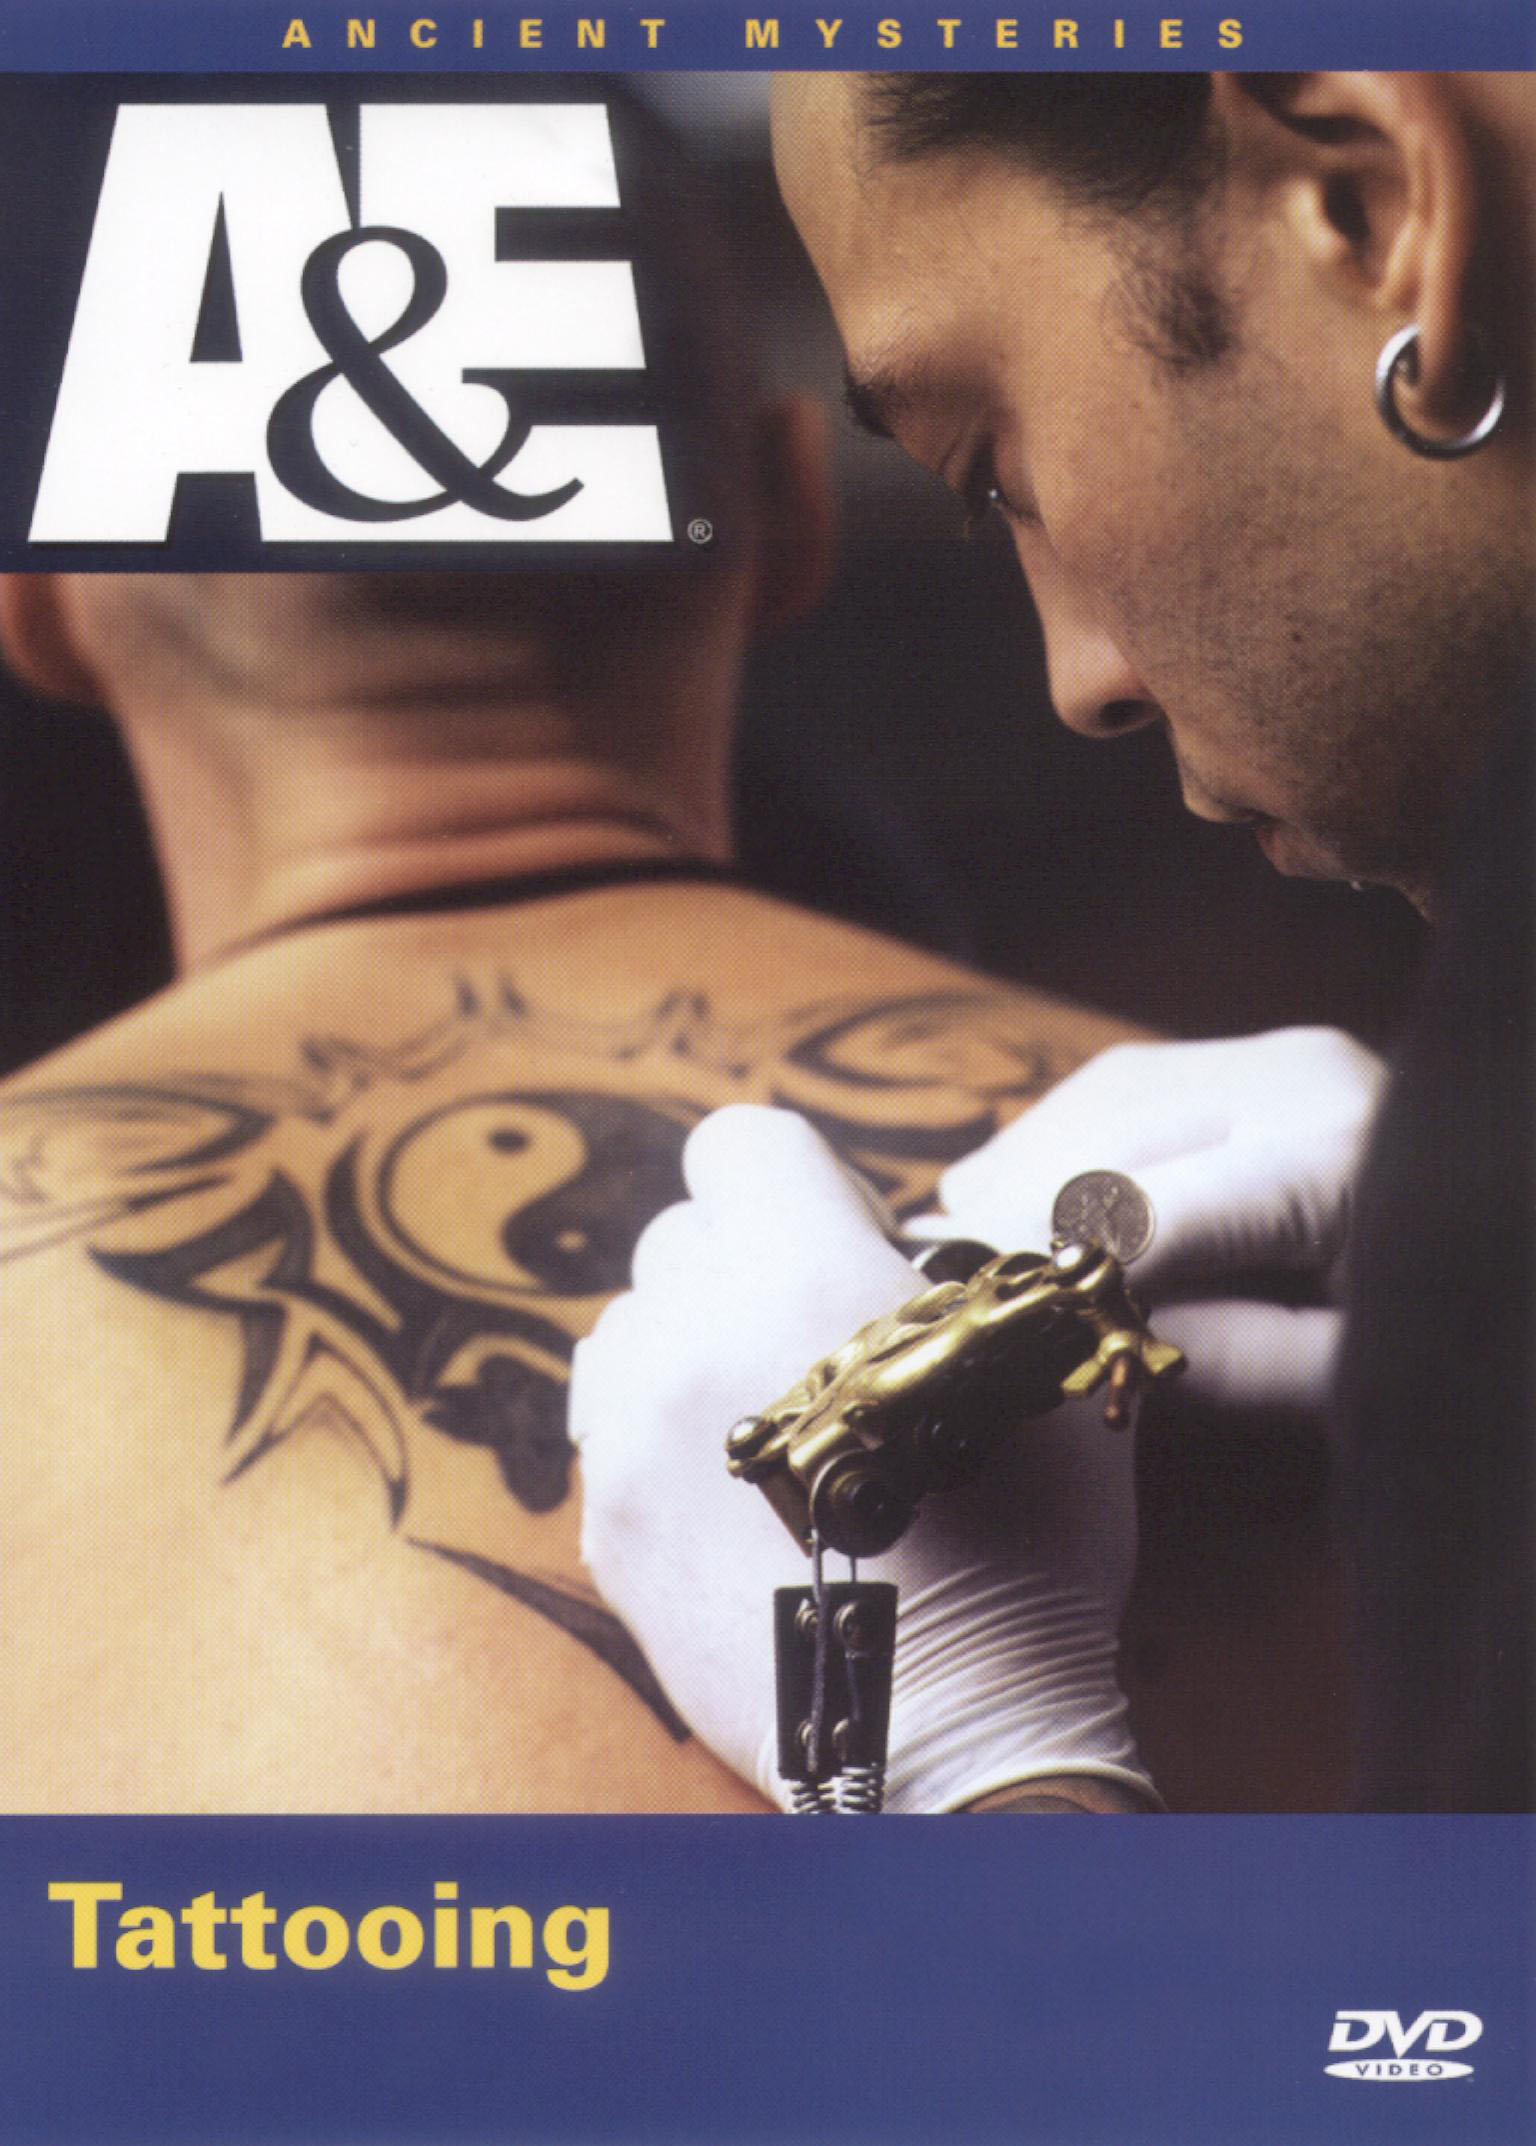 Ancient Mysteries: Tattooing